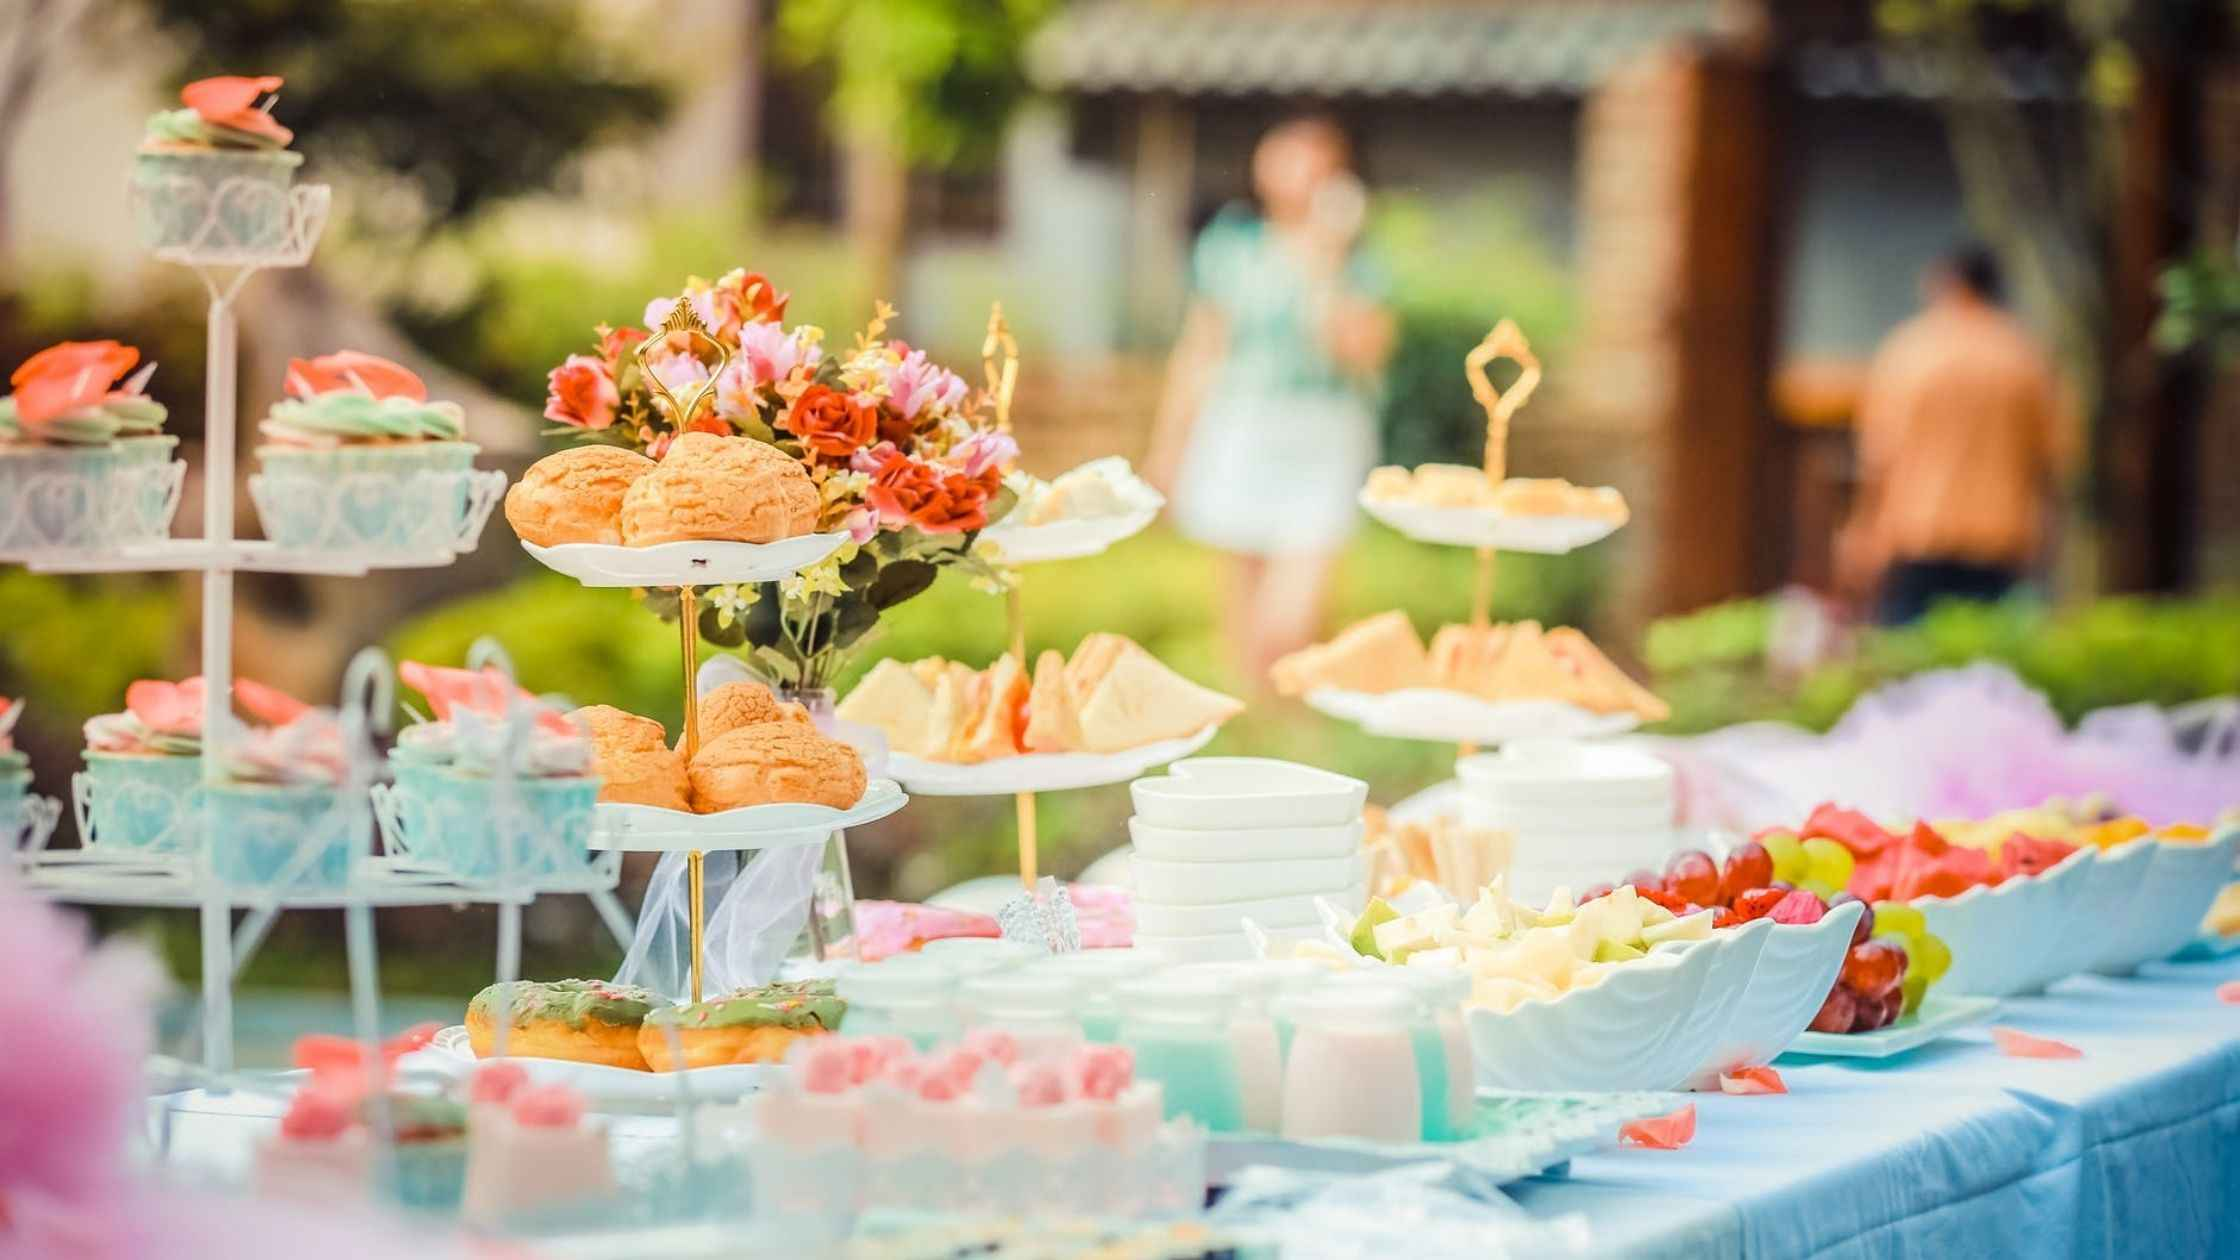 Check It Out - Checklist for Baby Shower Supplies - SupermomGlobal